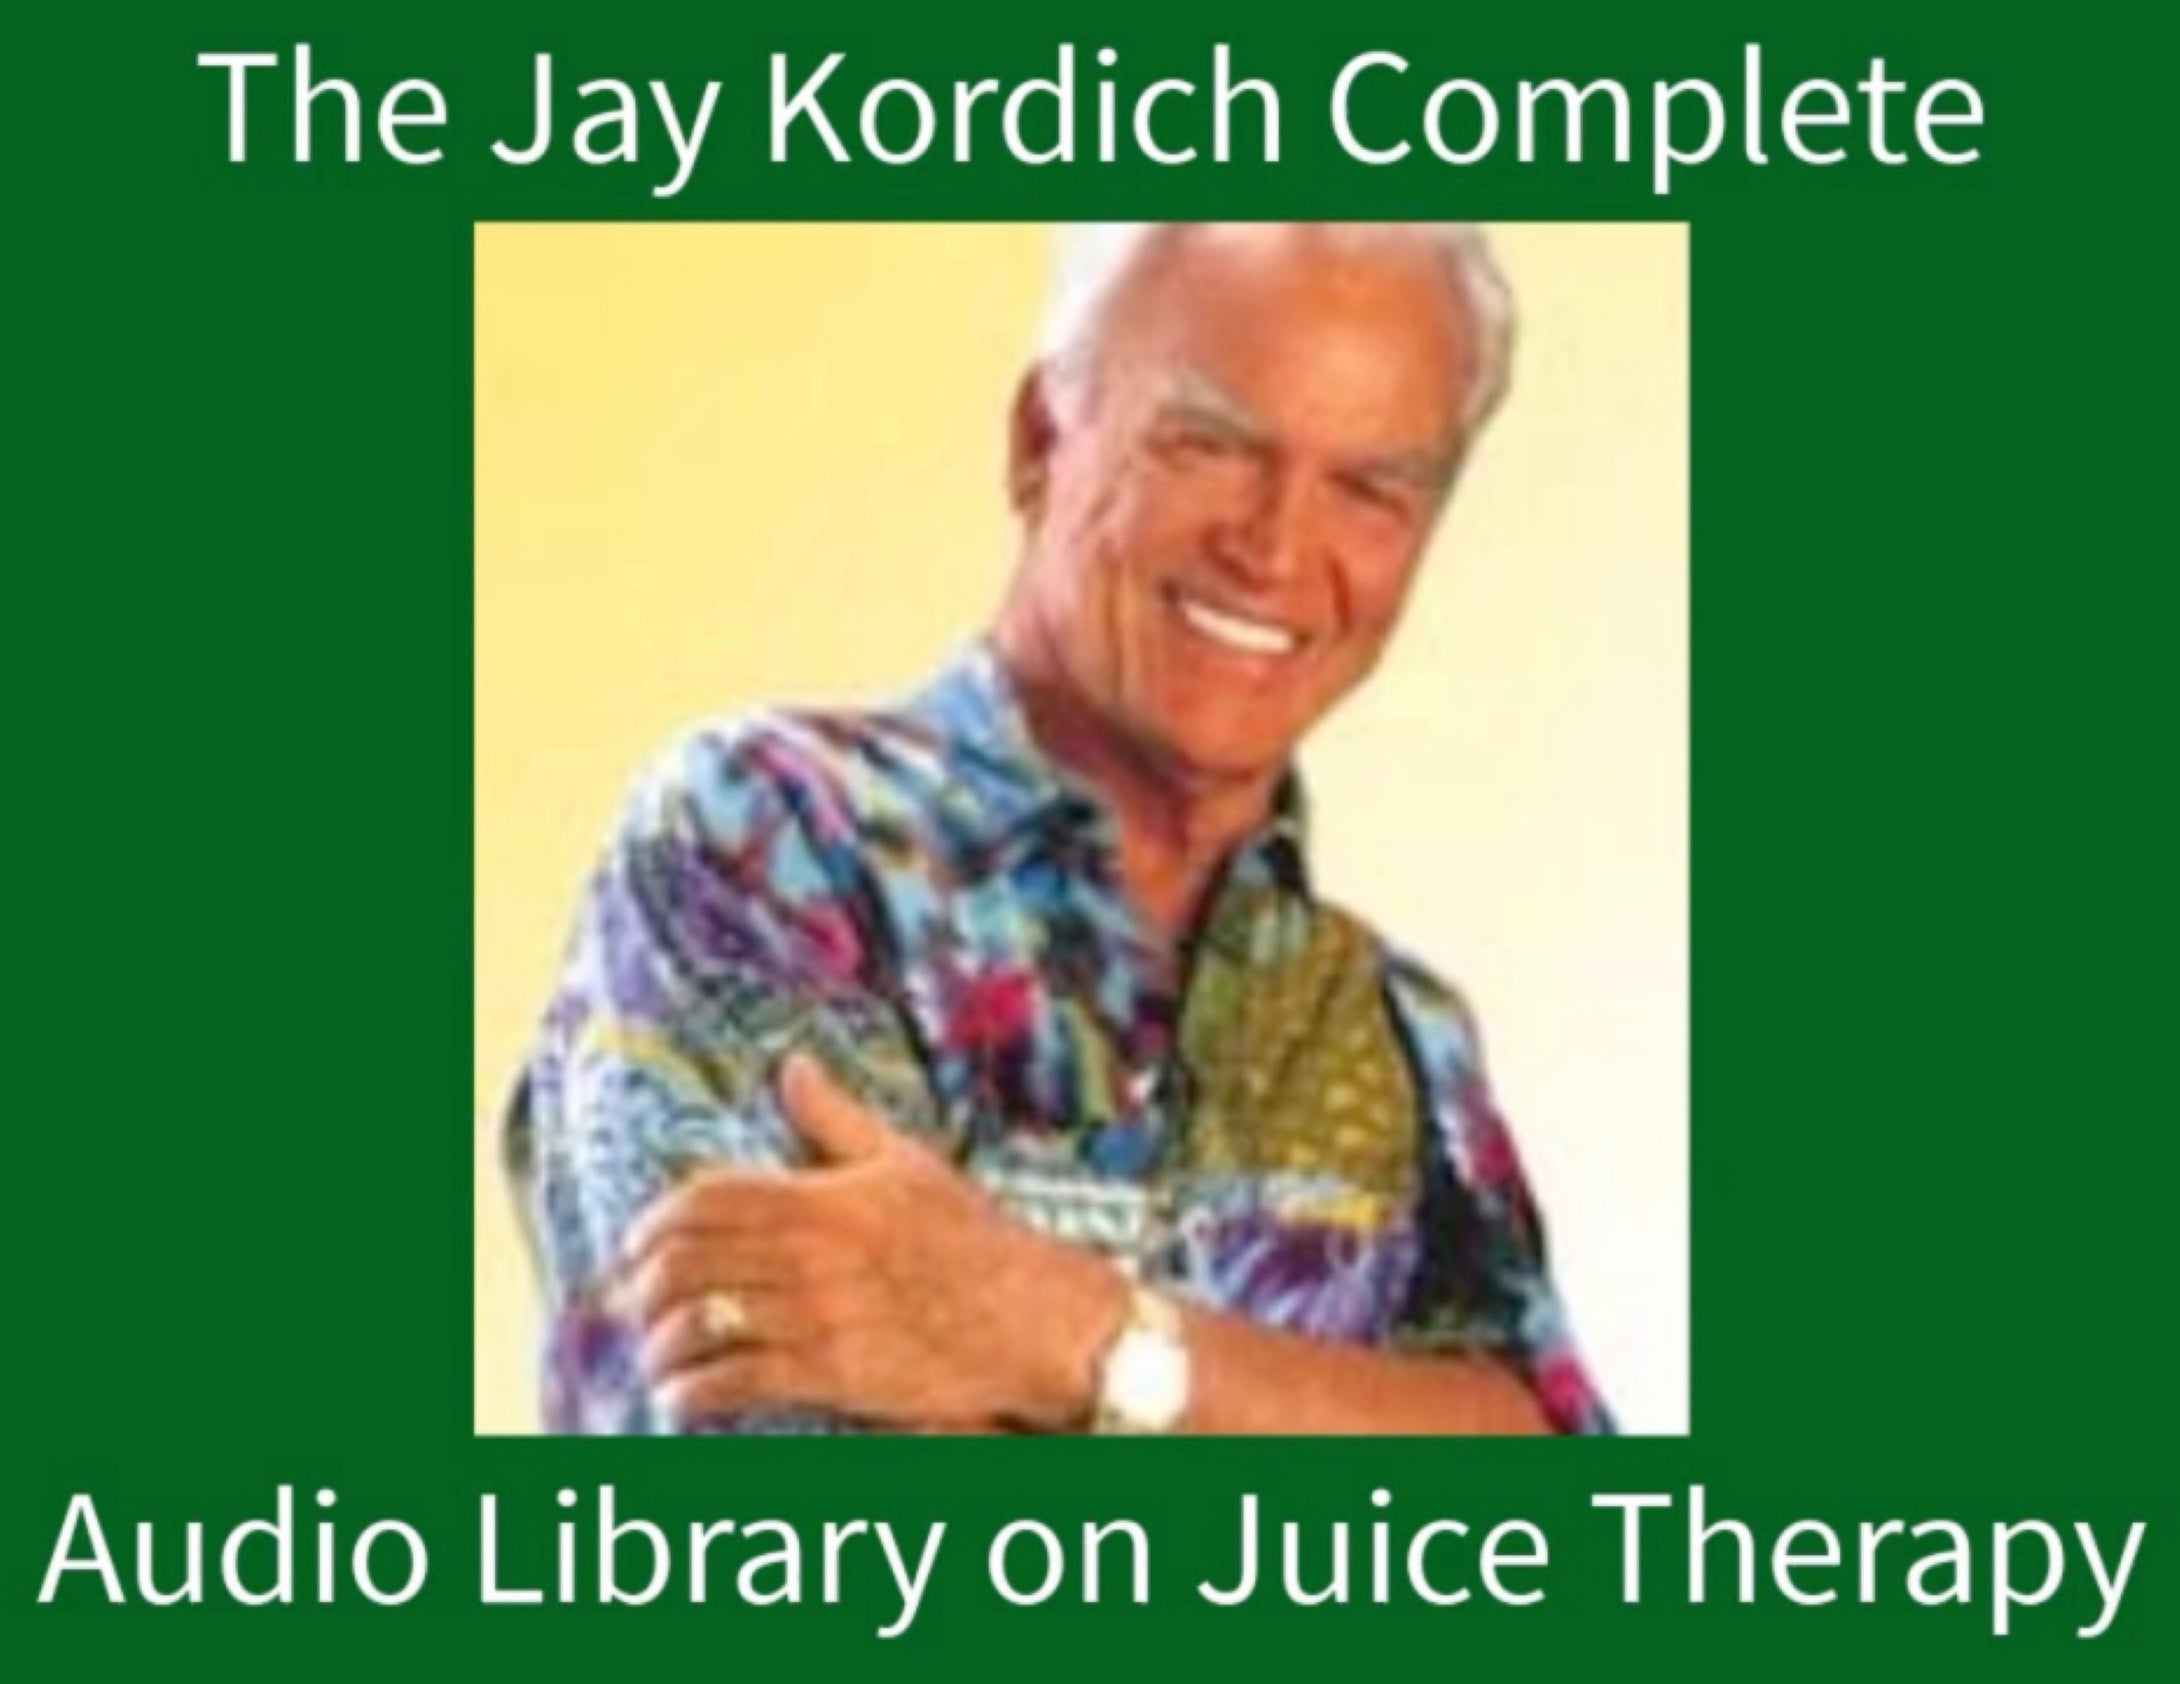 The Jay Kordich Juicing & Nutrition Audio Library - 12 Lectures!